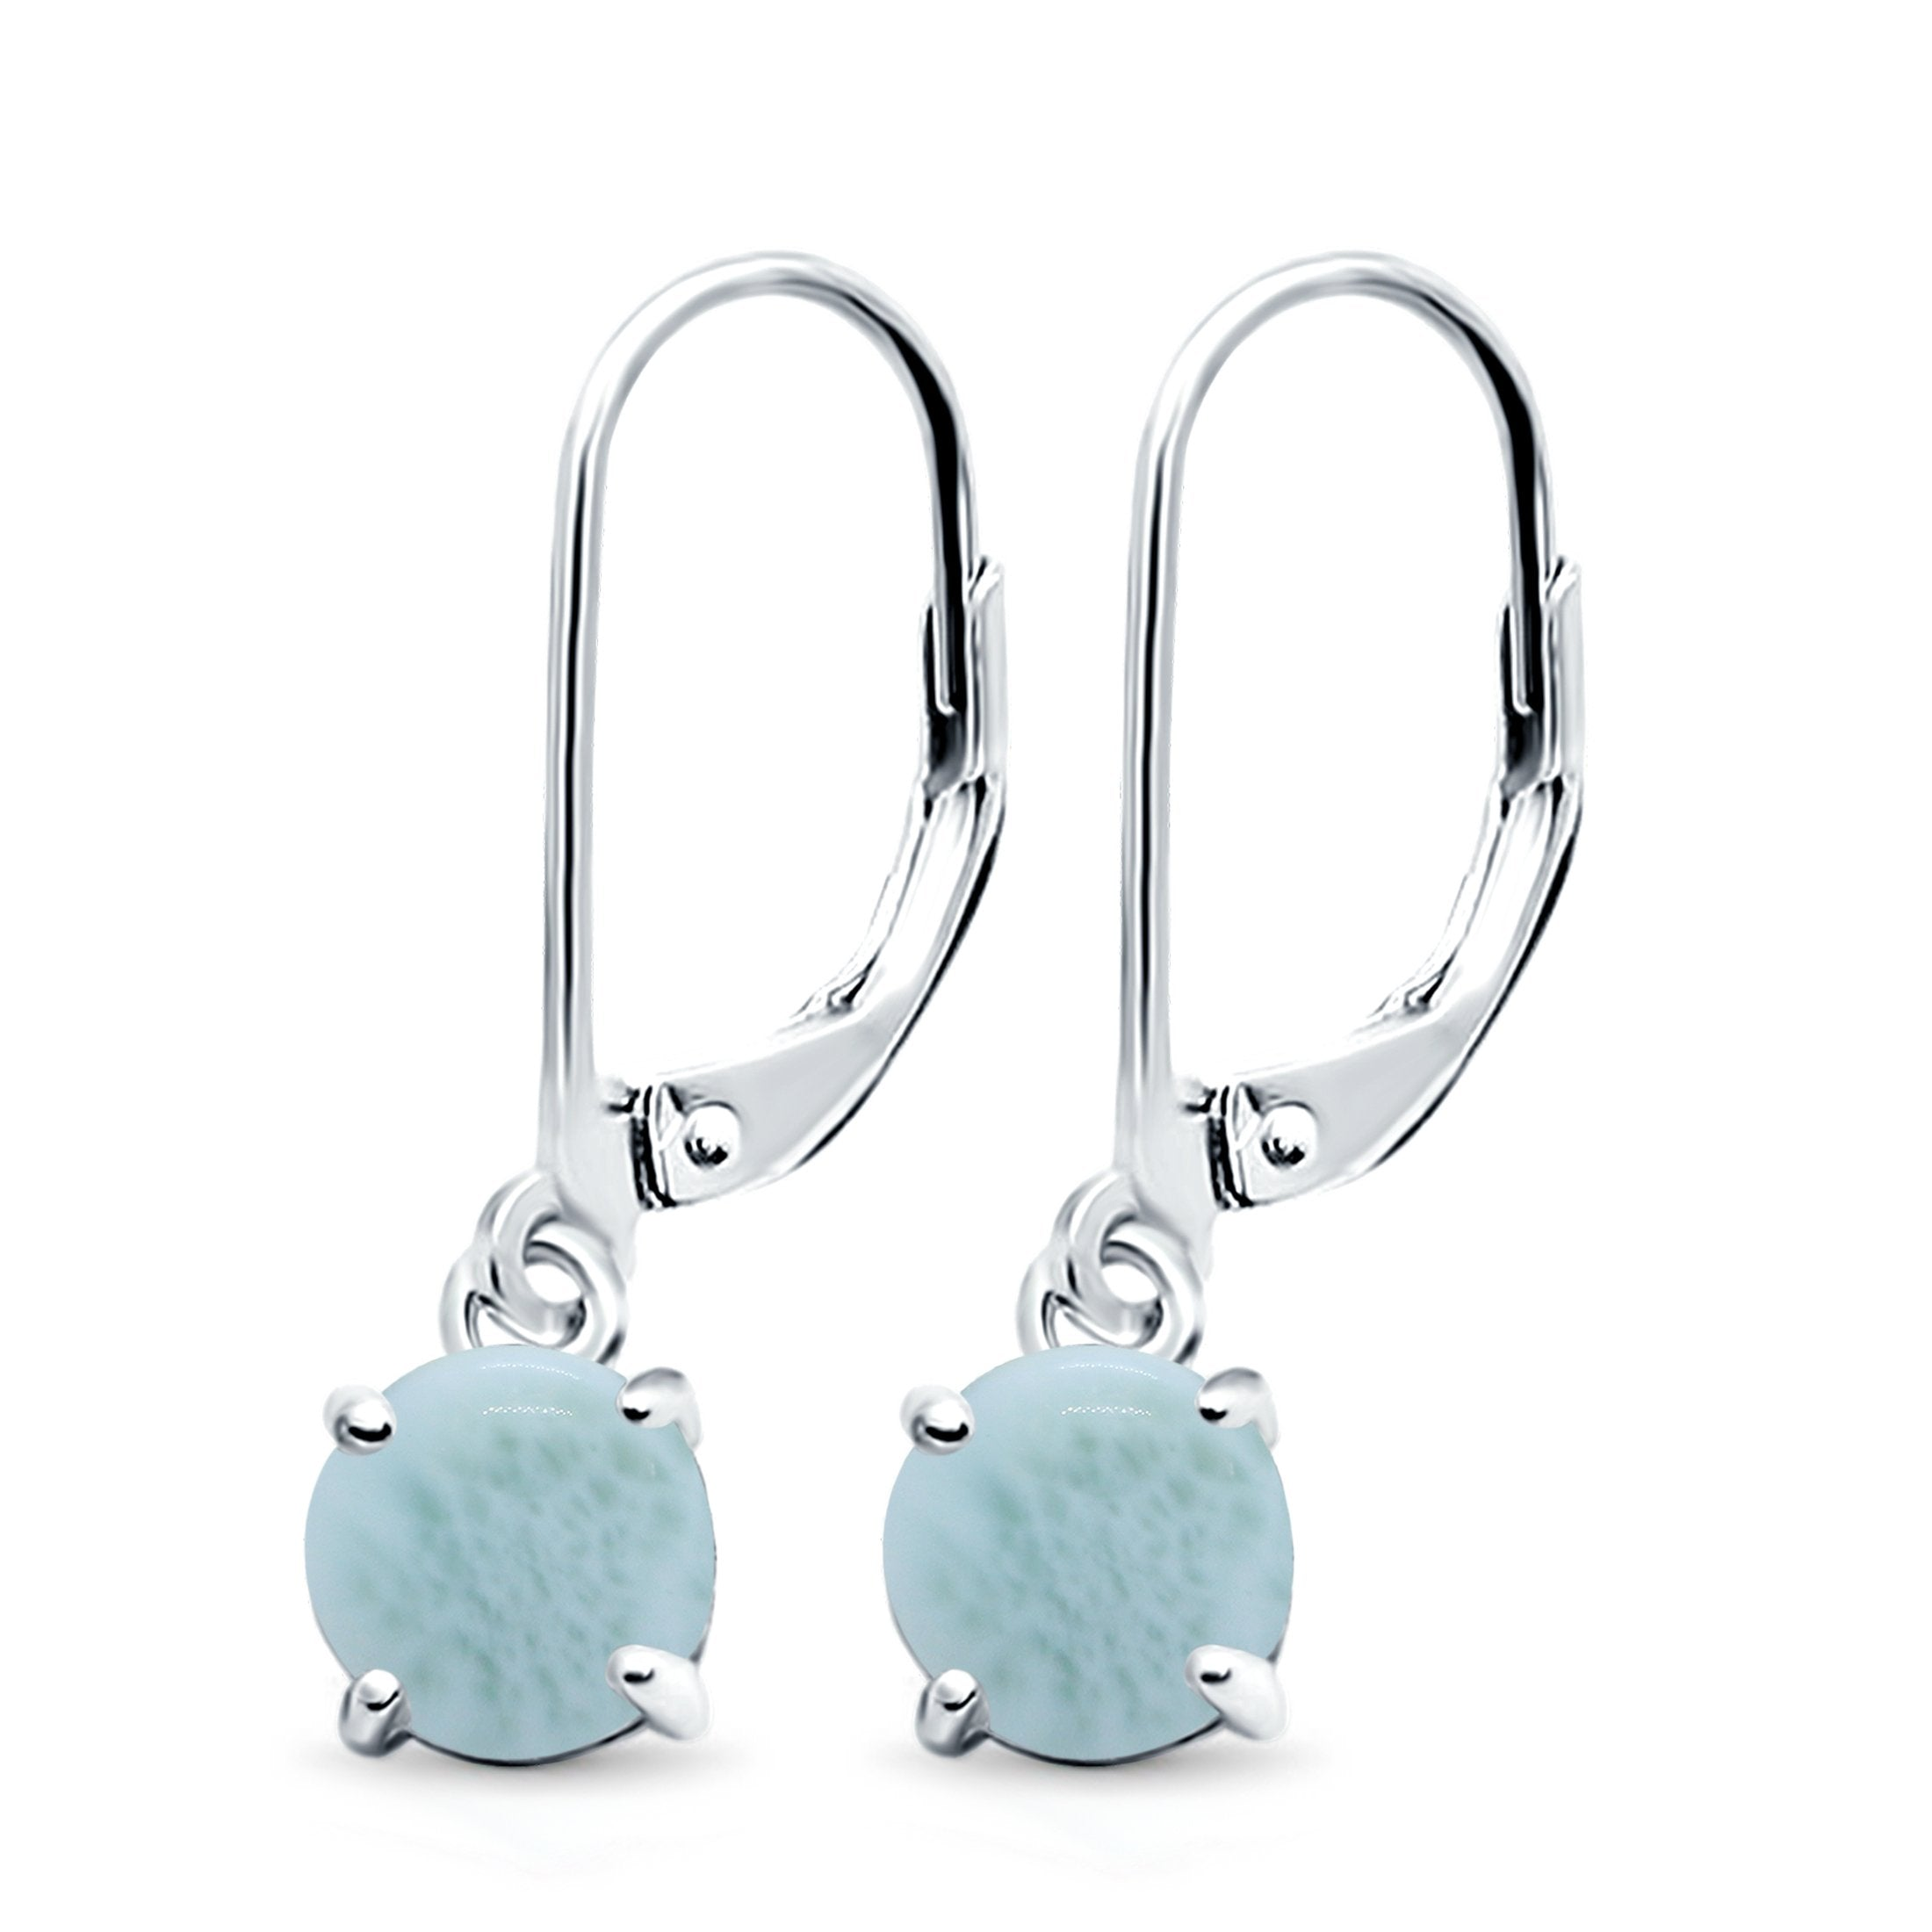 Round Natural Larimar Leverback Earrings 925 Sterling Silver (25.4mm)